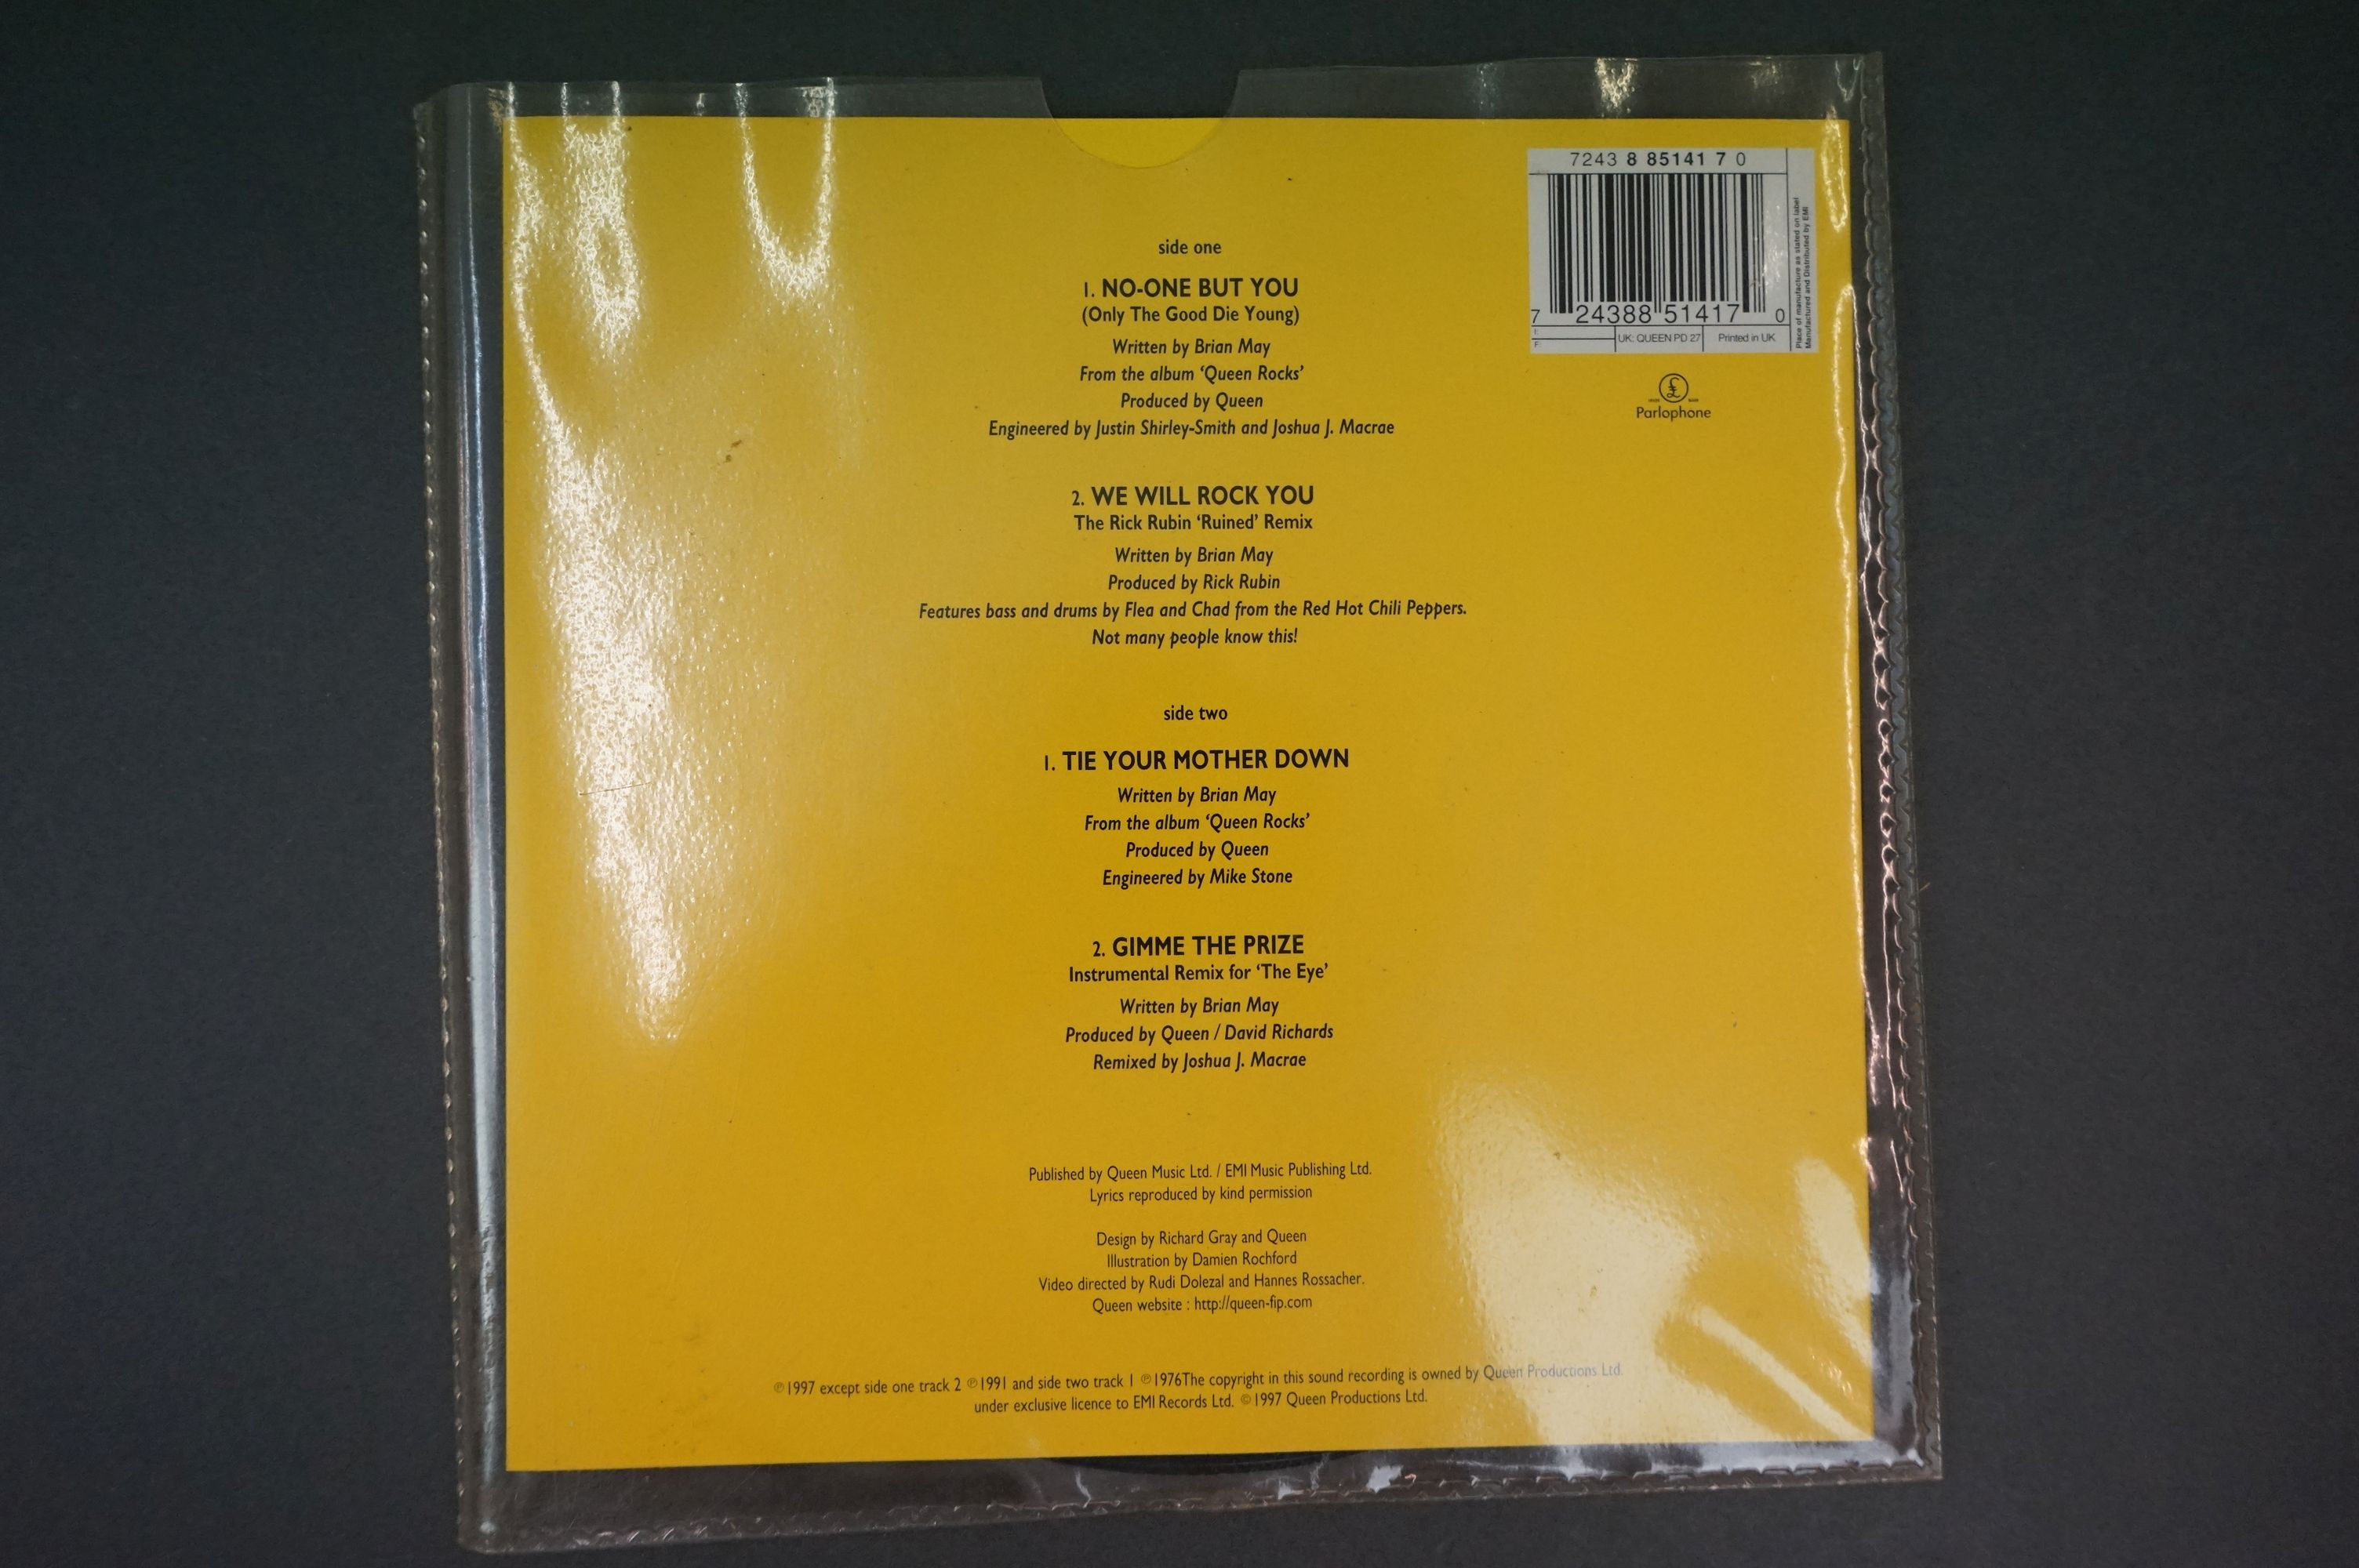 Vinyl - Queen & related collection of 7 inch singles including 12 x No One But You Ltd Edn picture - Image 11 of 11